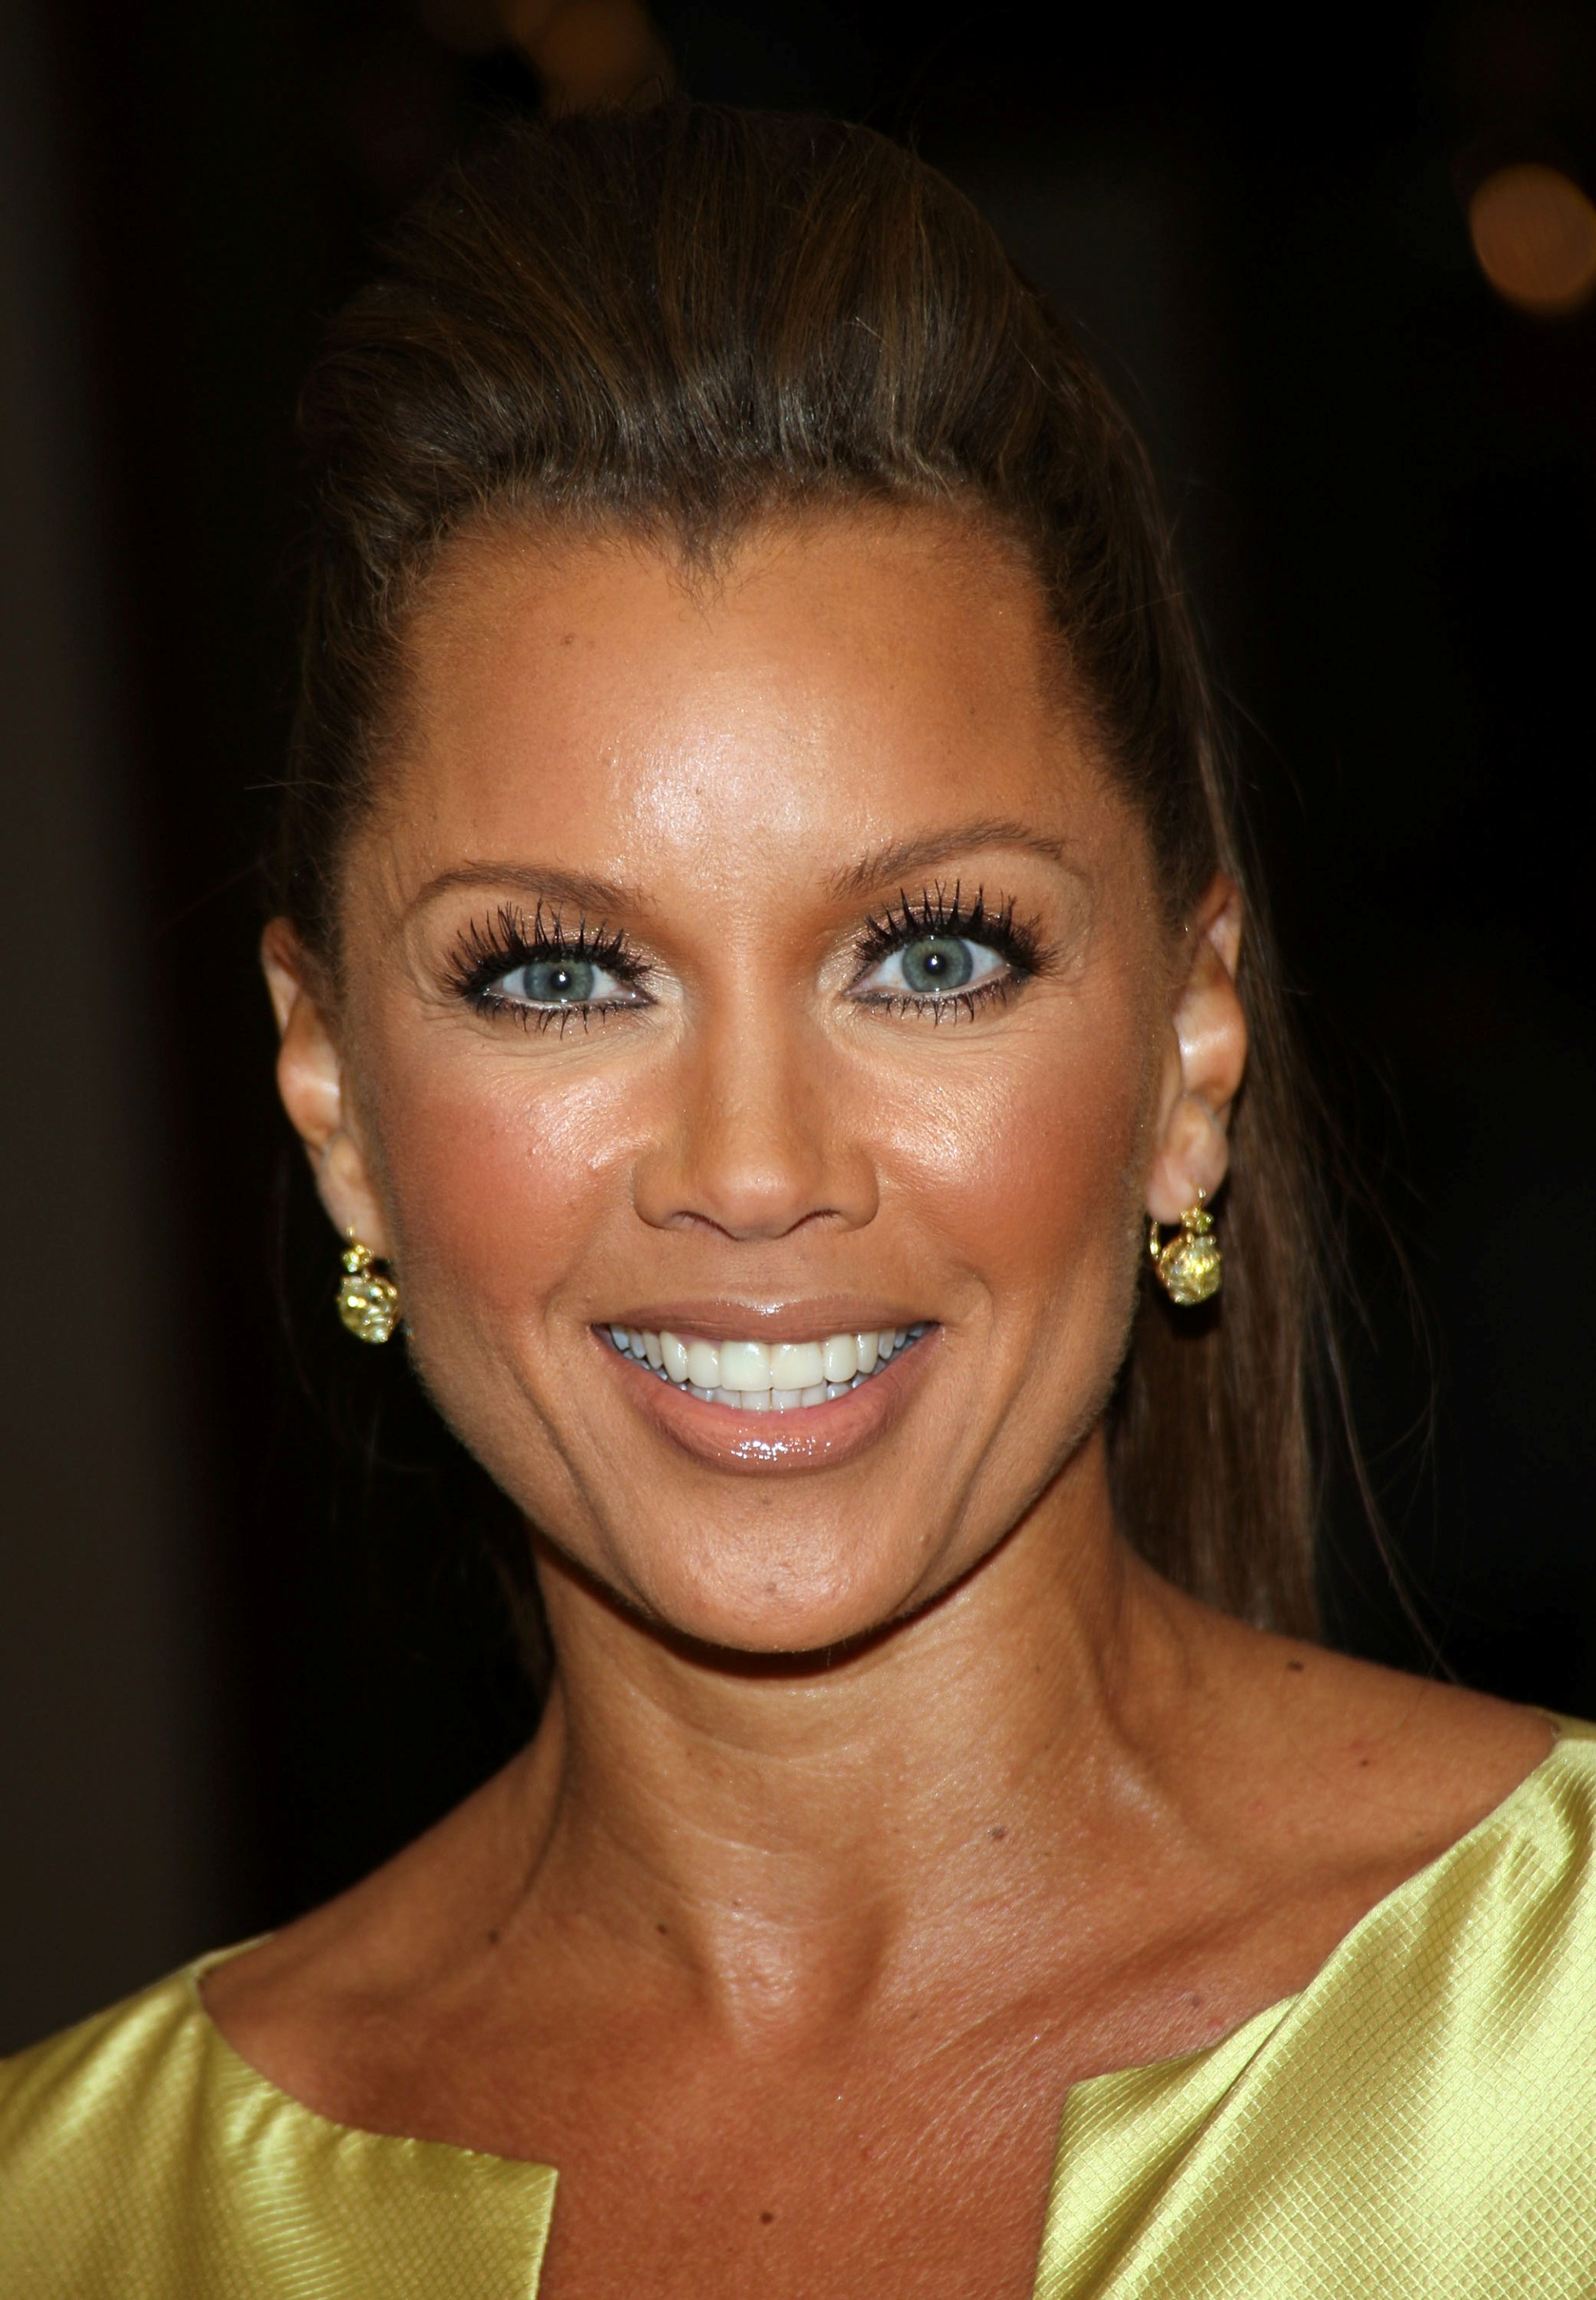 Vanessa Williams - Running Back To You